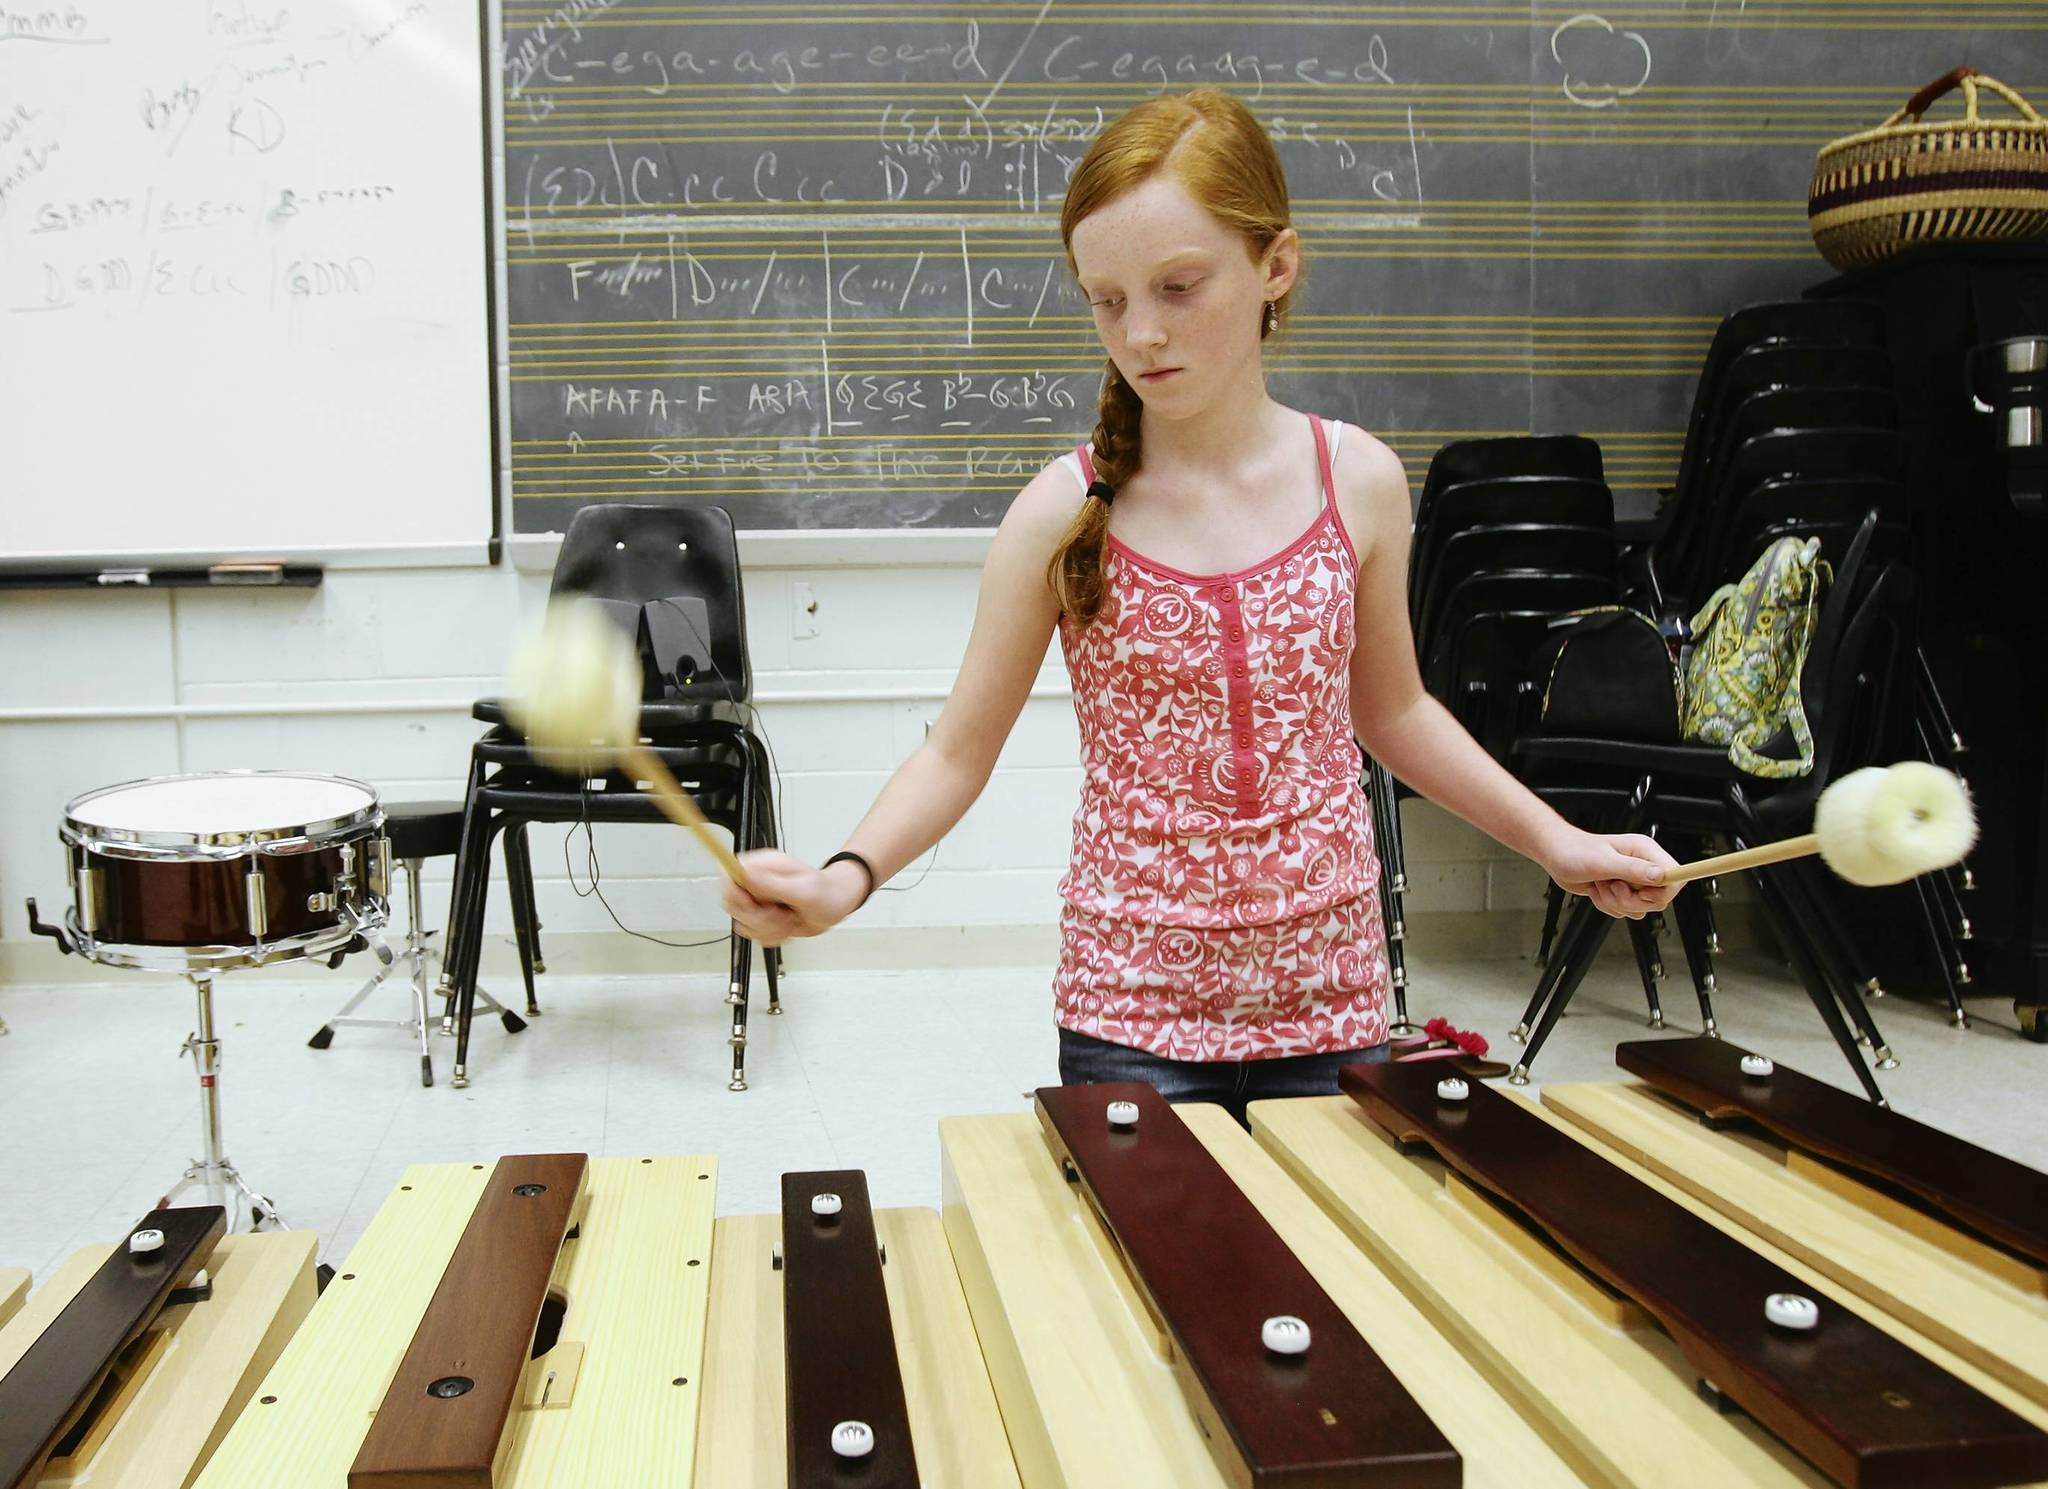 Natalie Gause , 11, plays the xylophone. Kids&#039; College students practice in World Drumming class at Lake Sumter Community College on Wednesday, June 27, 2012. (Tom Benitez/Orlando Sentinel)